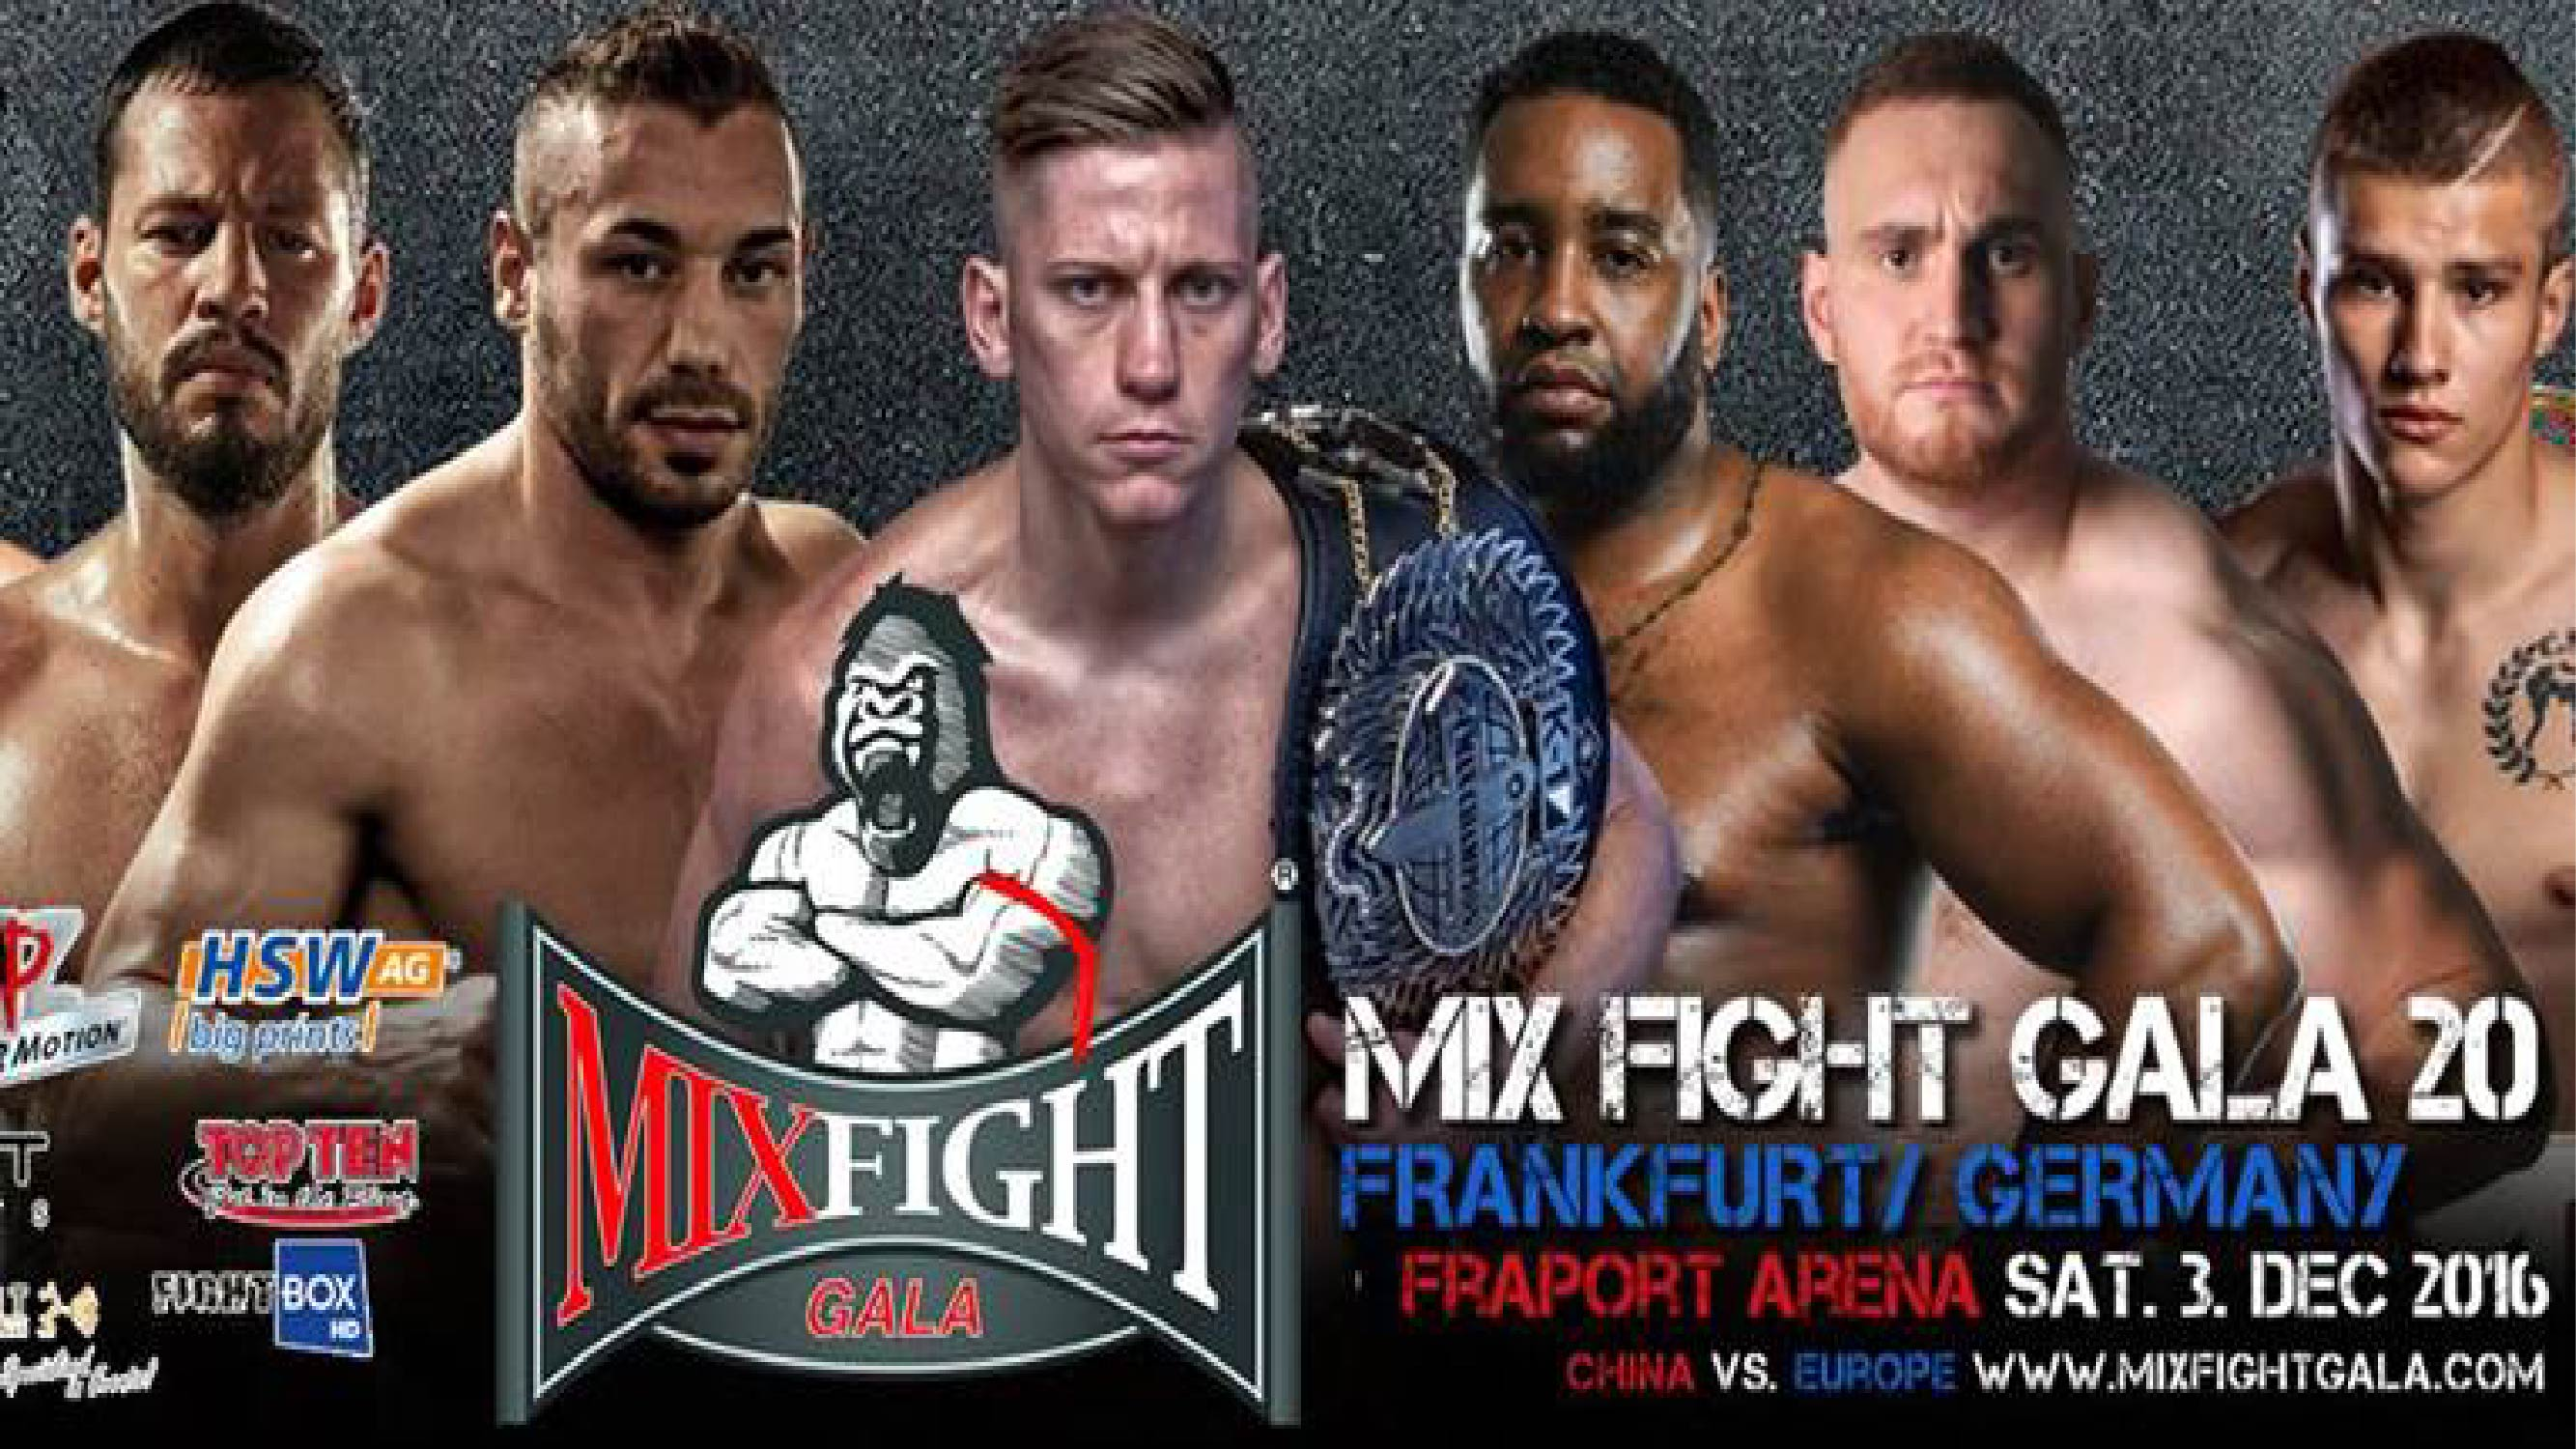 Mix Fight Gala 20 - LIVE on FightBox HD from Frankfurt, Germany on Saturday December 3rd at 9:45pm CET